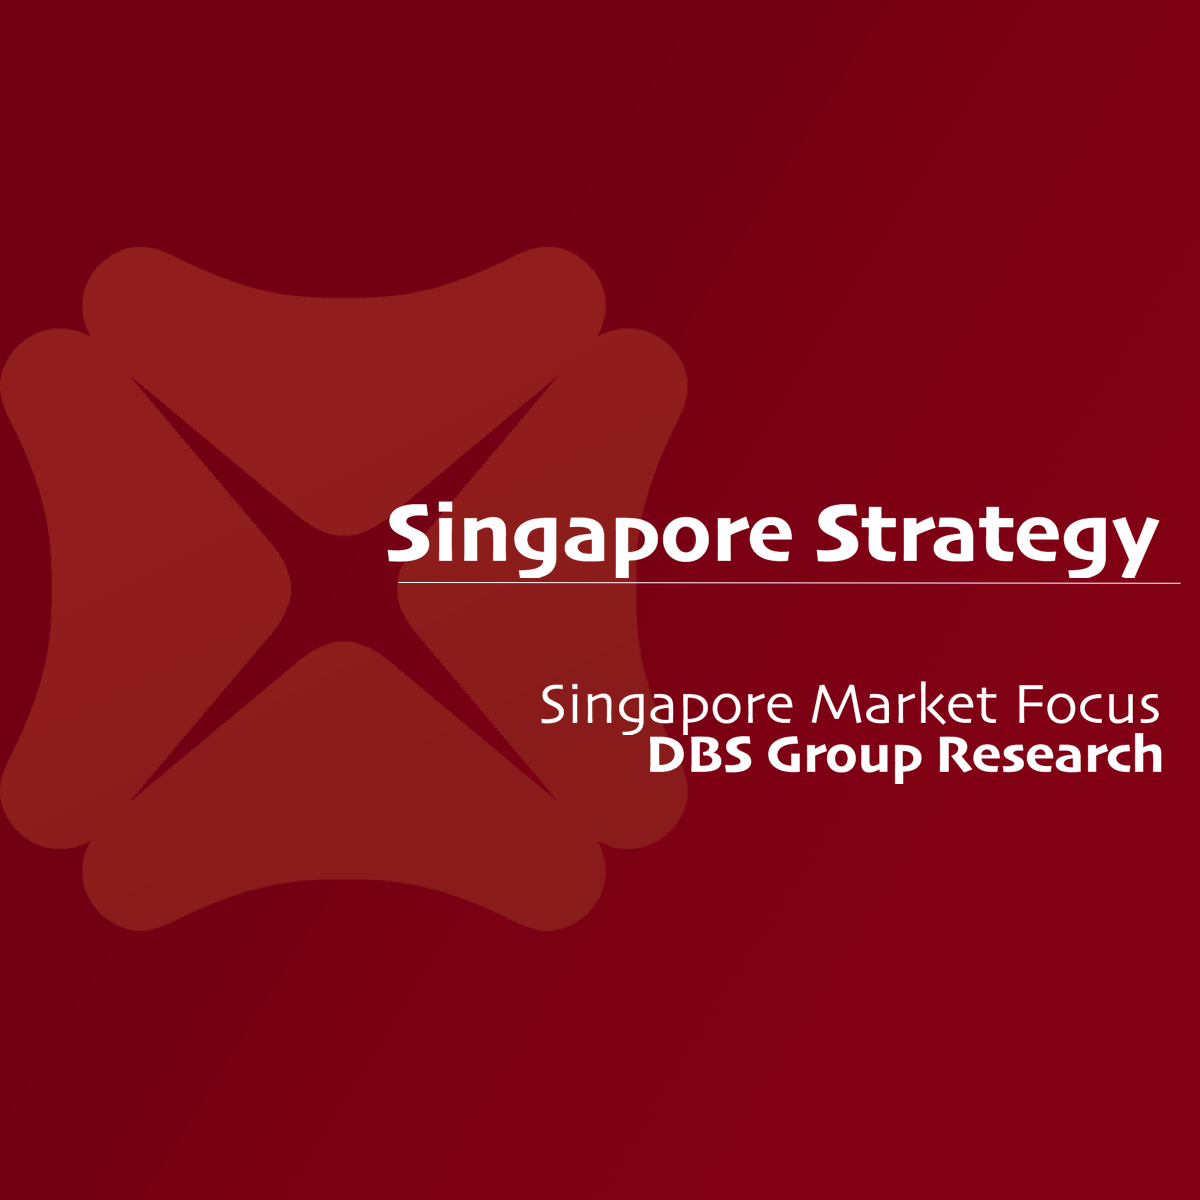 Singapore Strategy - DBS Vickers 2018-07-04: Buckle Up For A Rough Ride